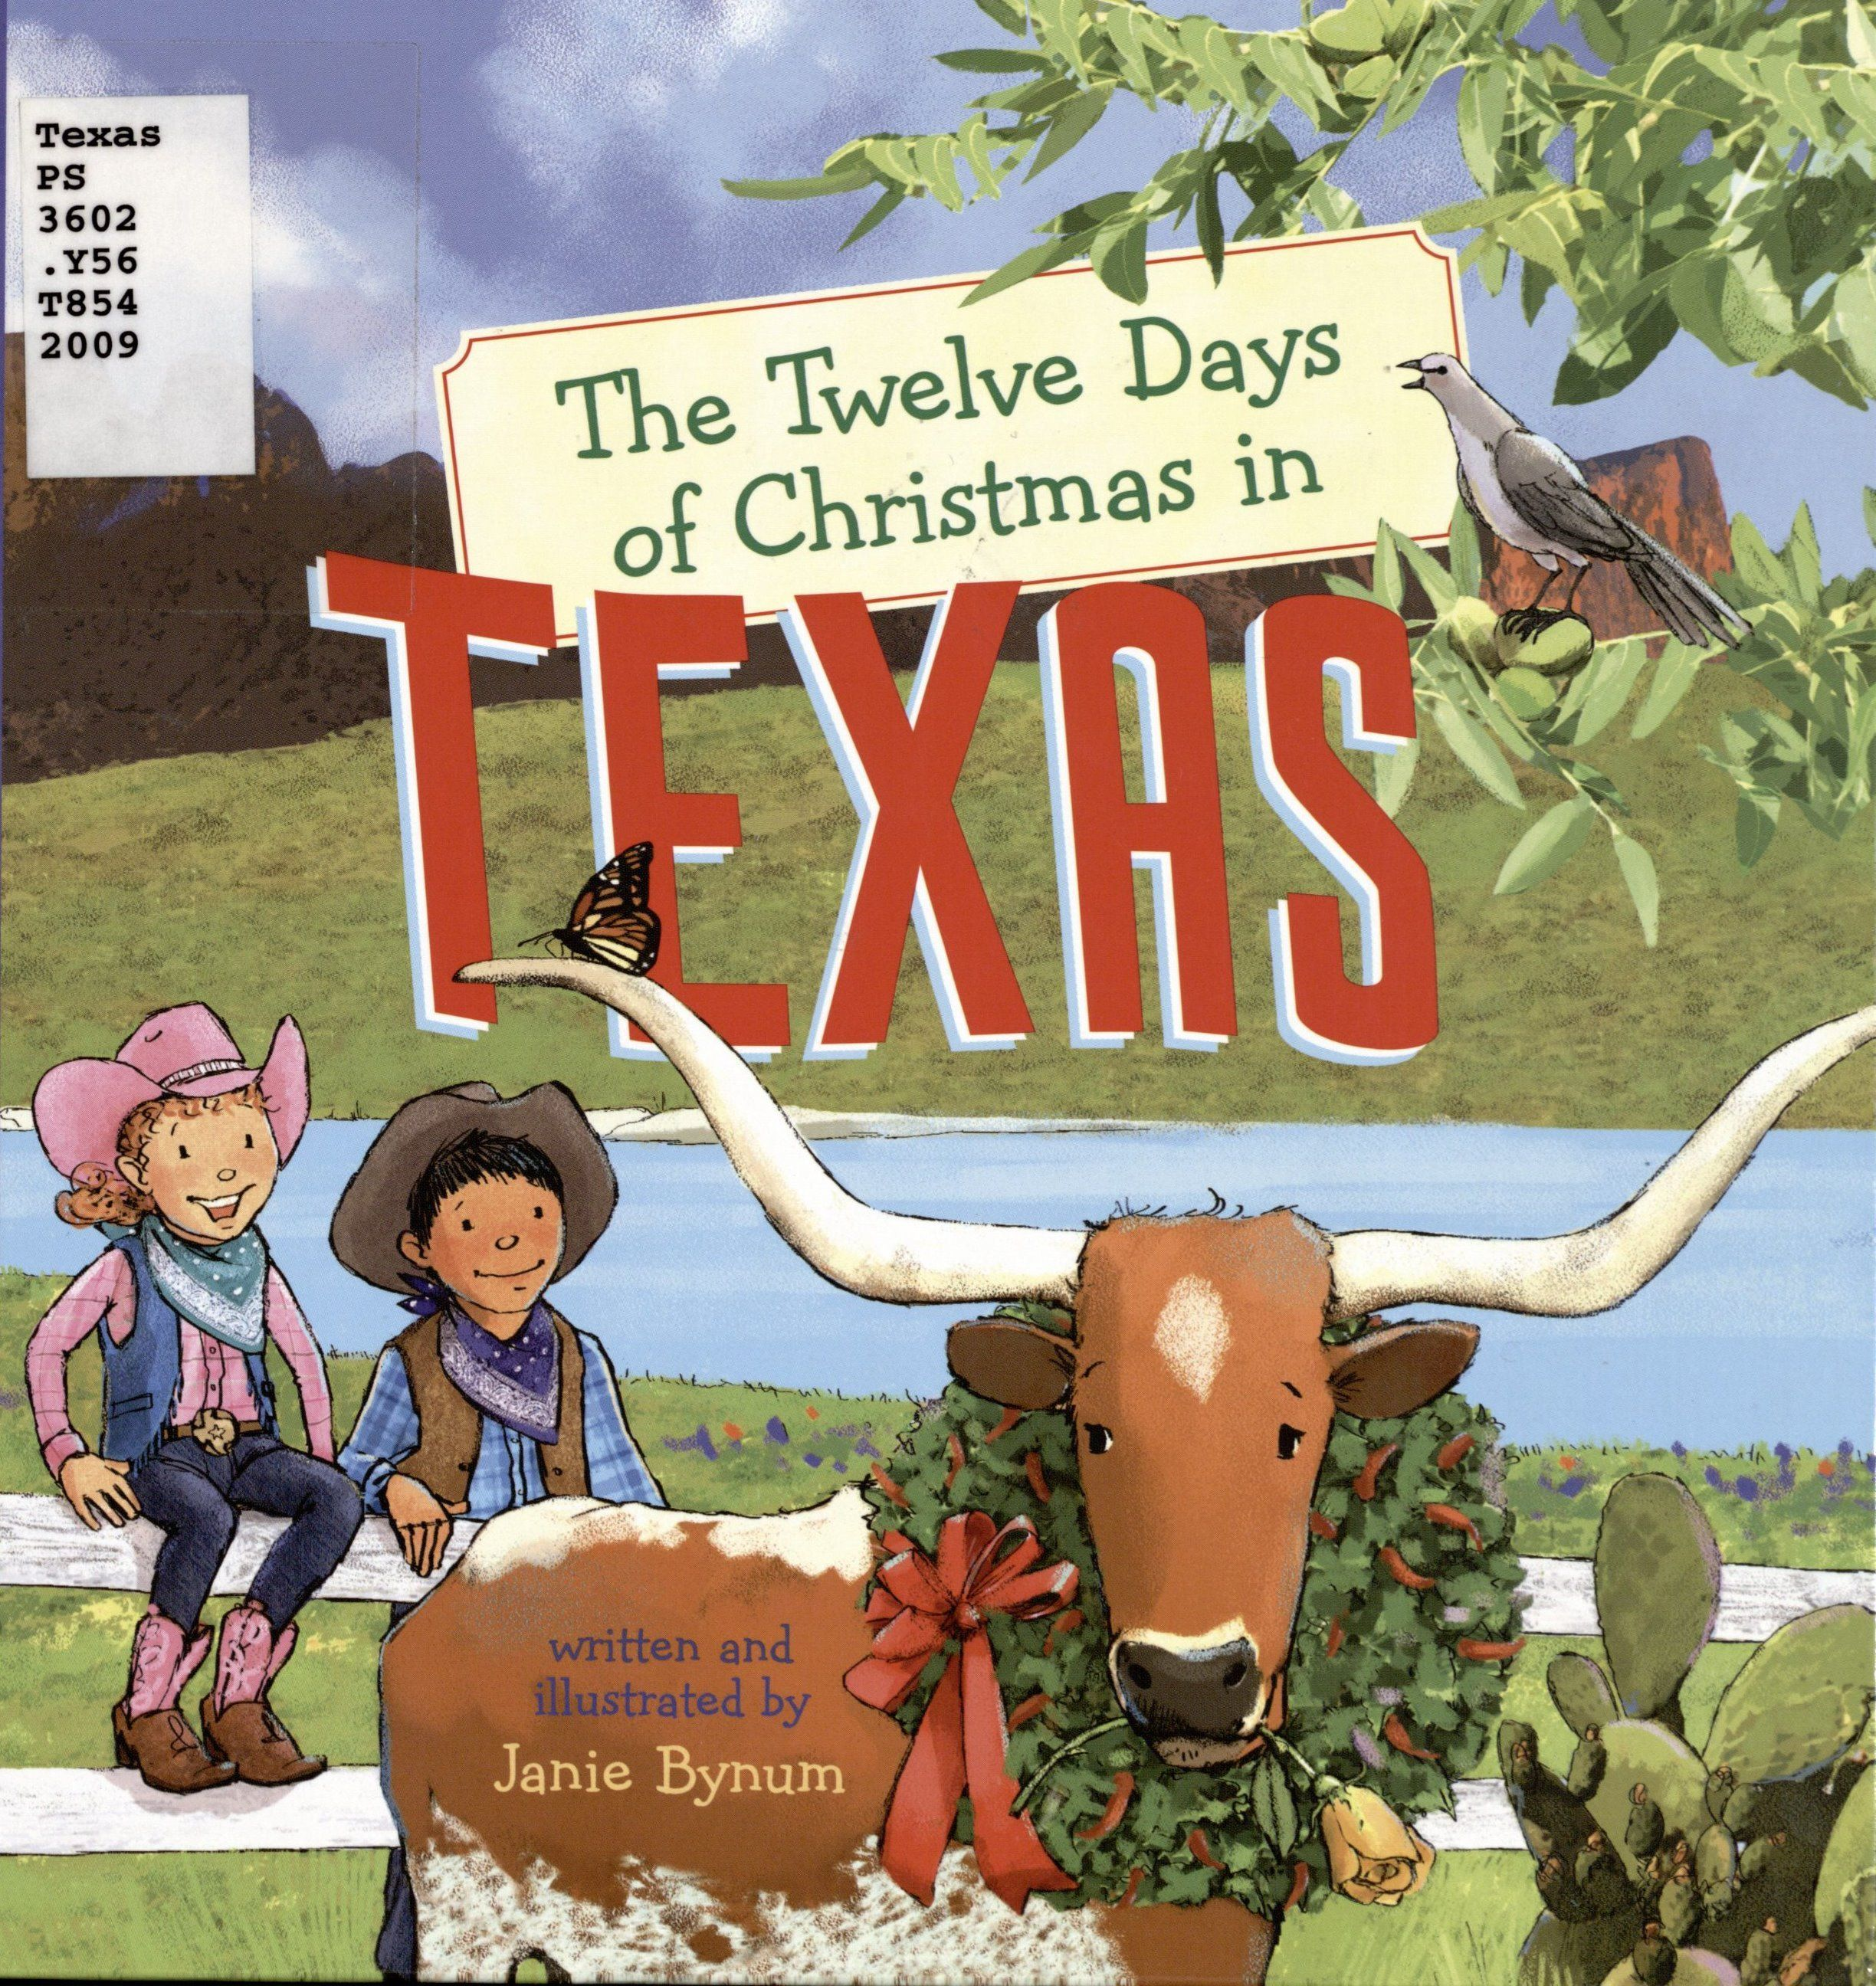 Bynum, Janie. The Twelve Days of Christmas in Texas. New York: Sterling, 2009. Print.